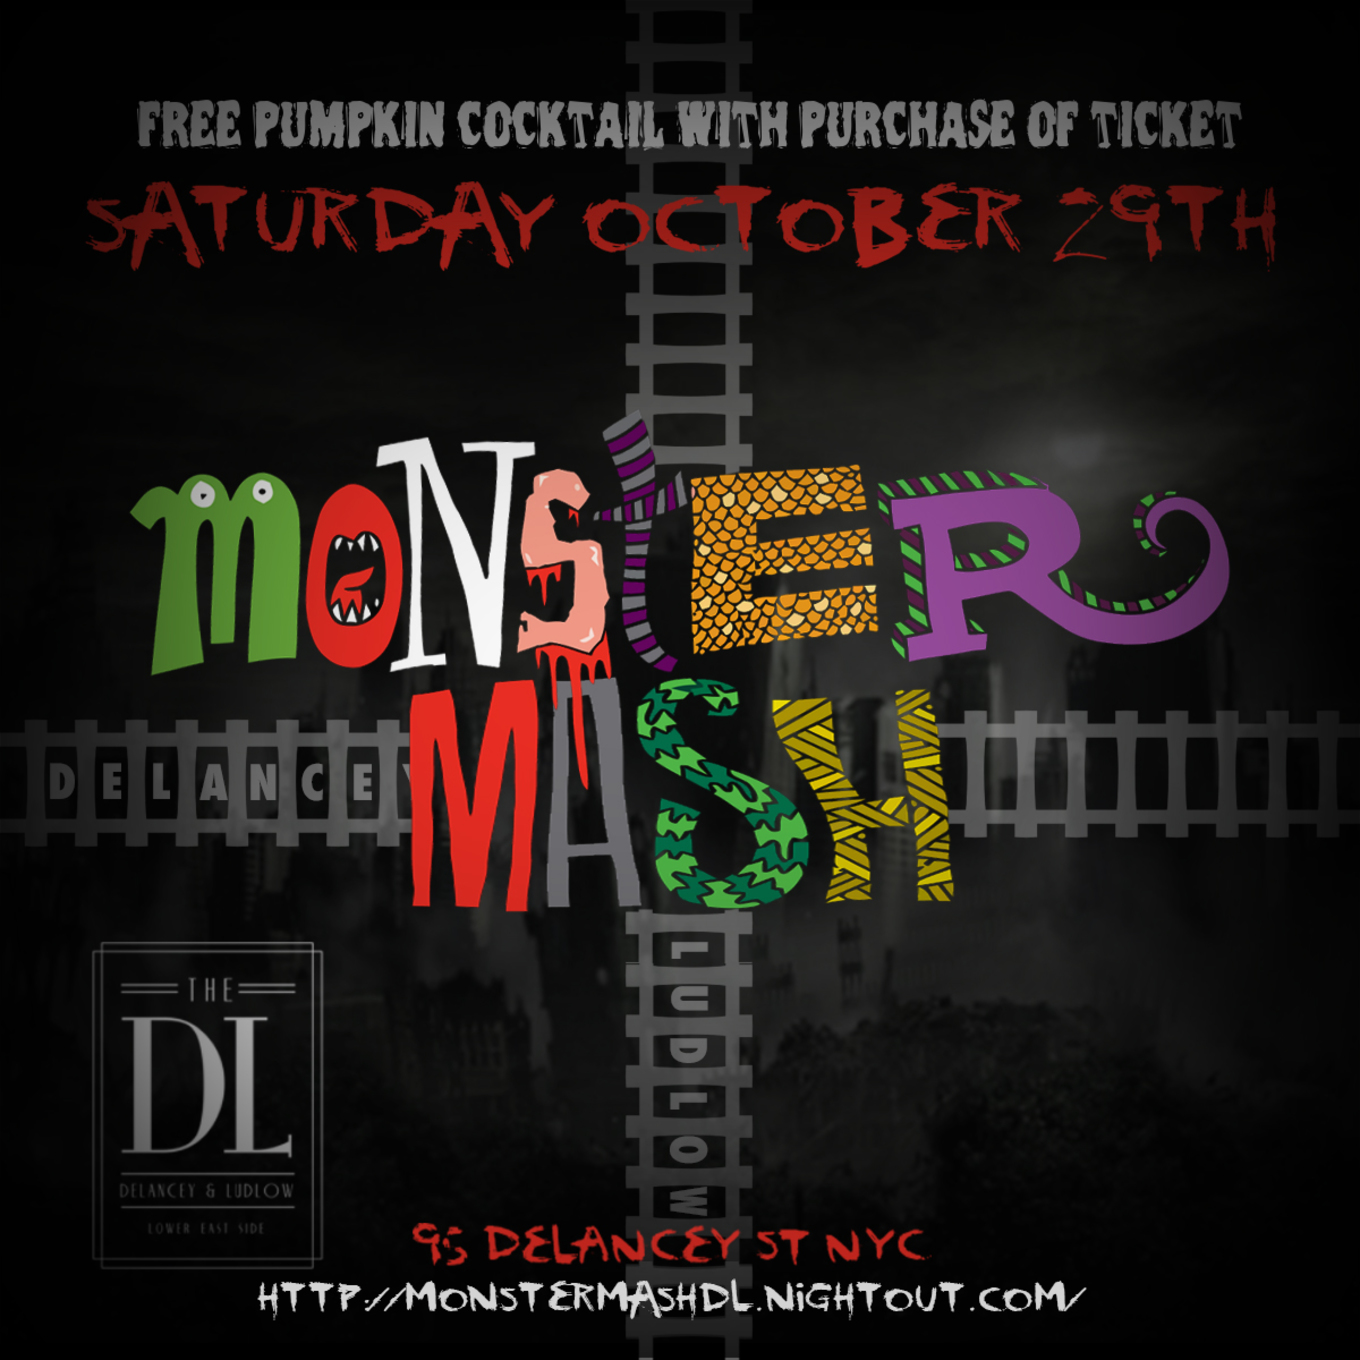 halloween monster mash at the dl - tickets - the dl, new york, ny